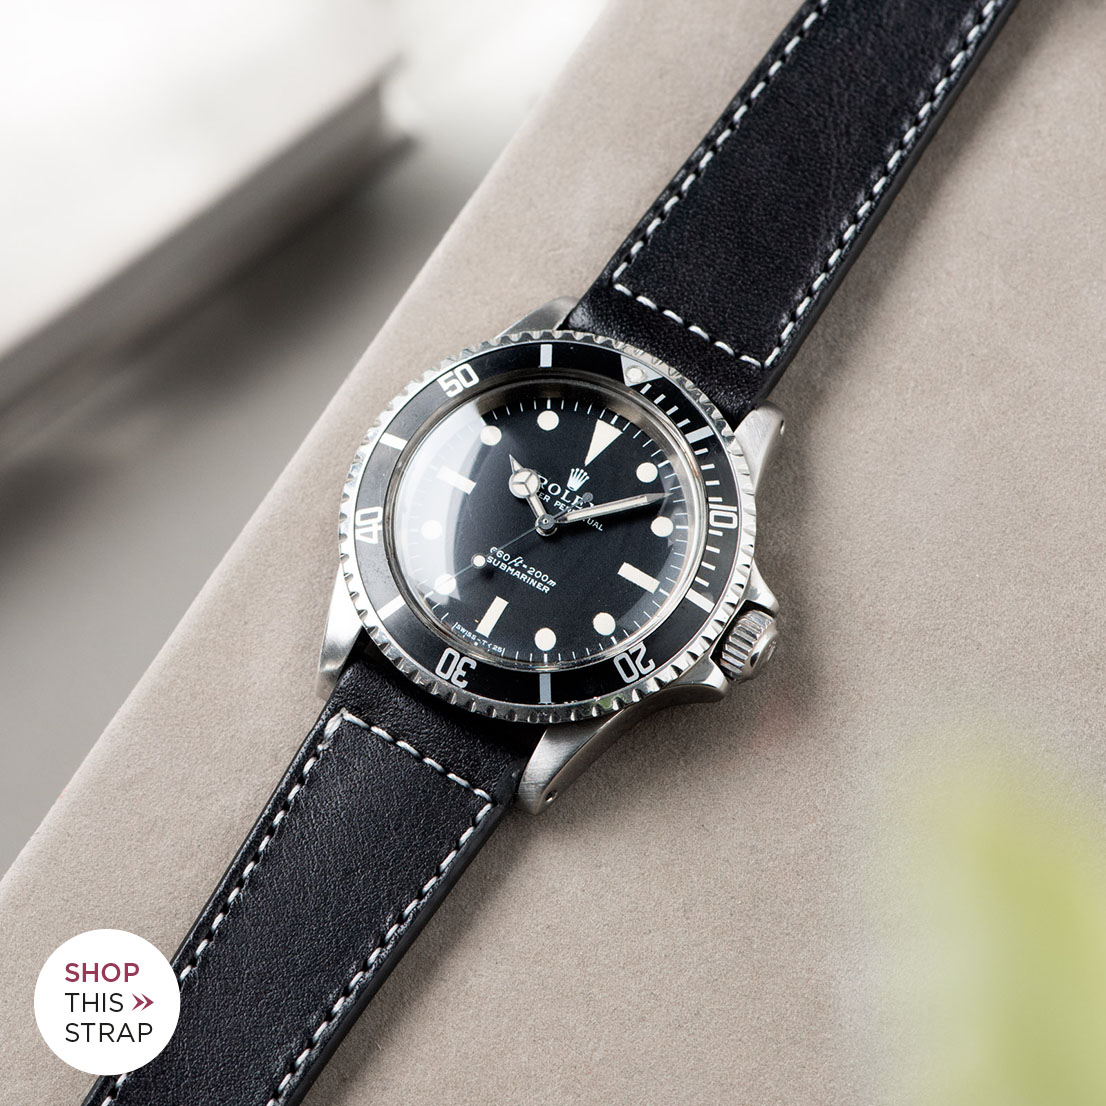 Bulang and Sons_Strap Guide_Rolex 5513 Submariner_BLACK BOXED STITCH LEATHER WATCH STRAP.